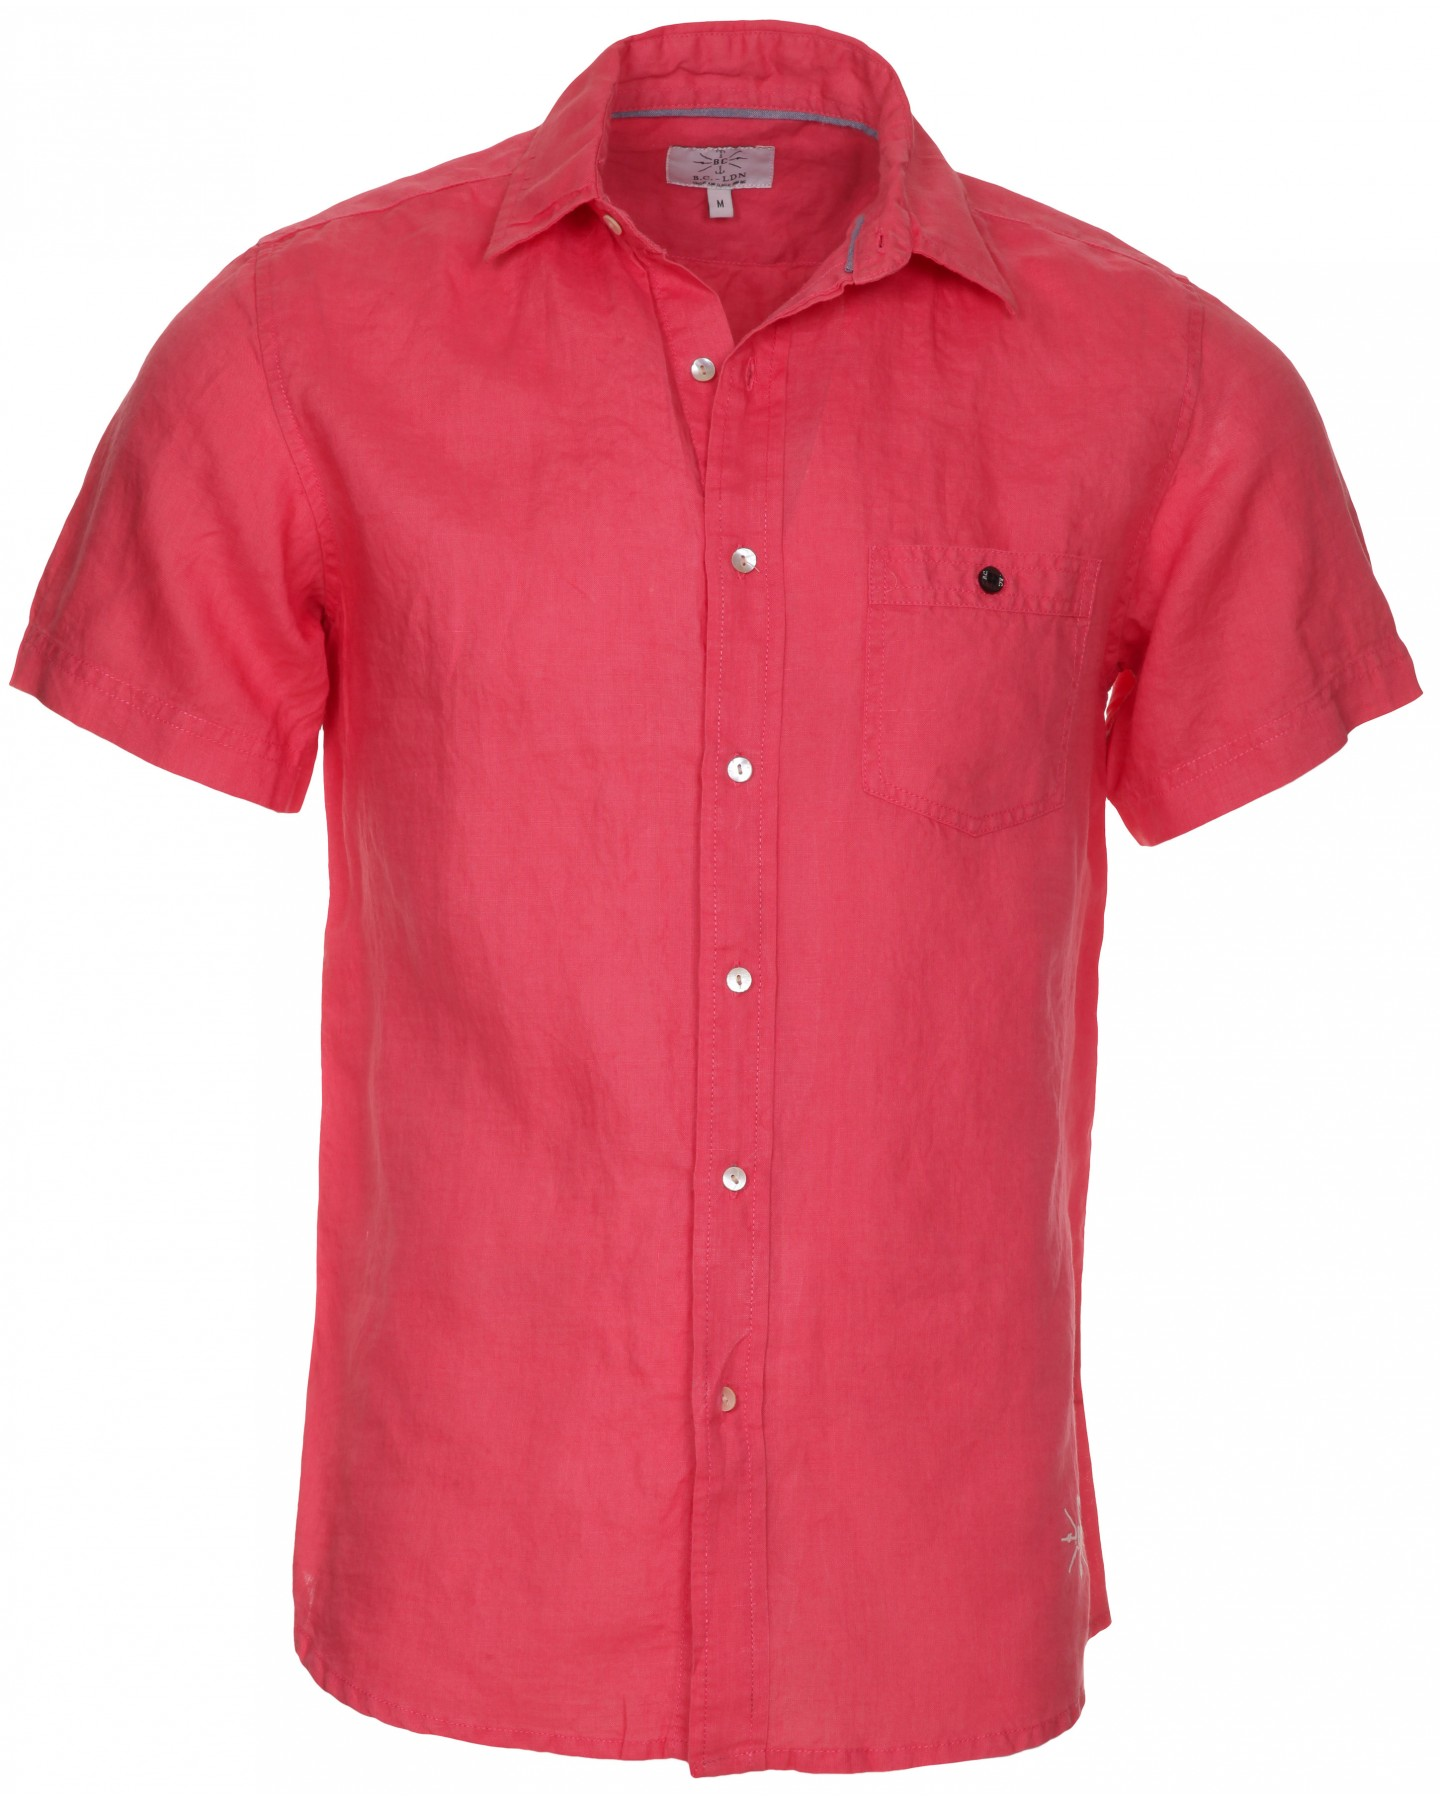 Blue inc mens bc london short sleeve linen shirt coral ebay for Coral shirts for guys